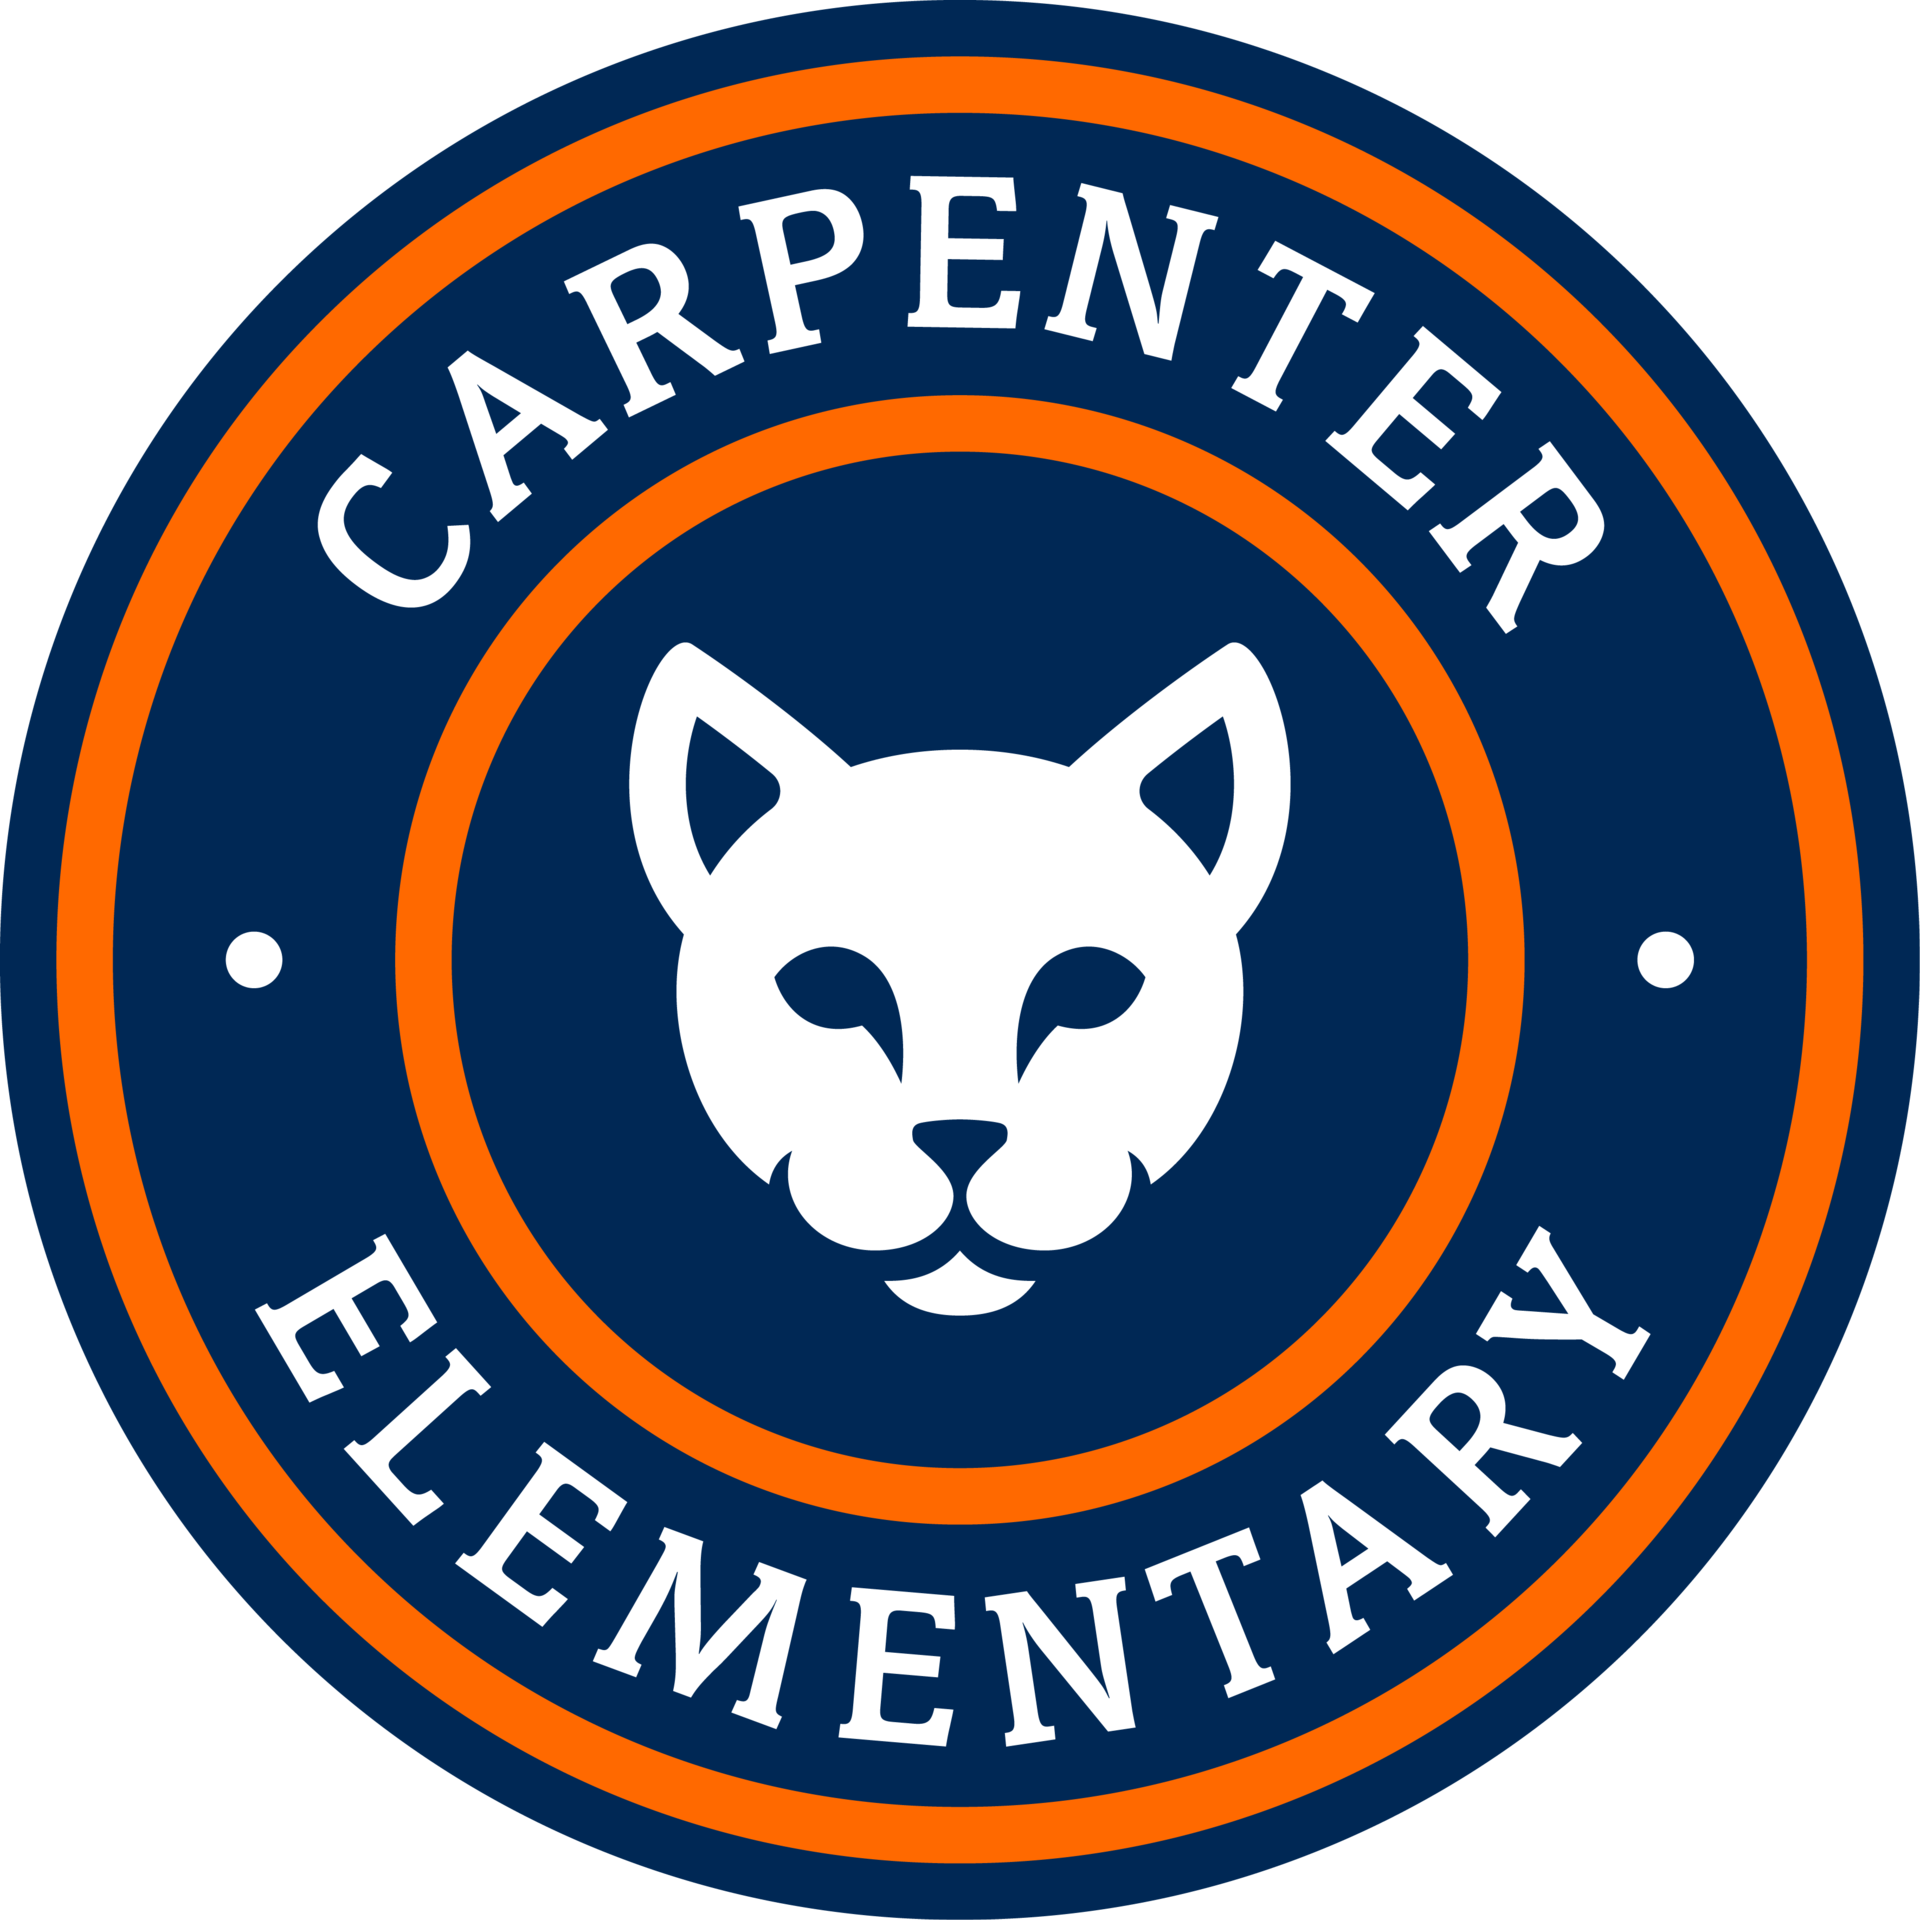 Carpenter Elementary school seal